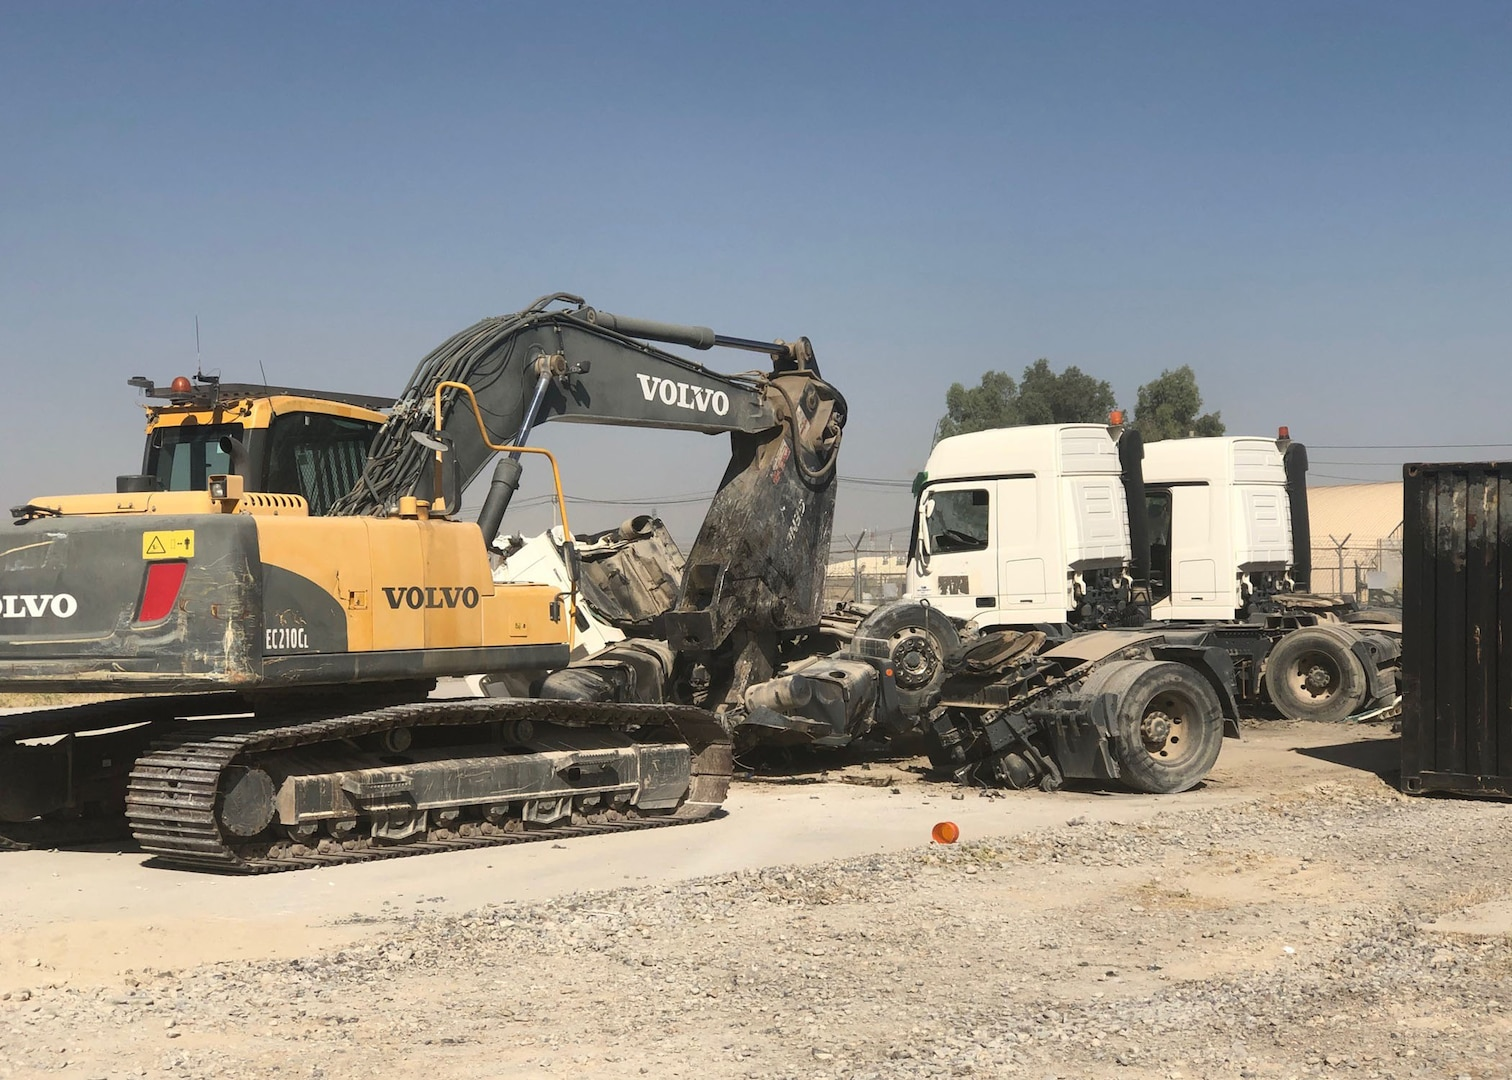 A heavy equipment operator uses shears to destroy one of the ten NATO bulk fuel carriers received at DLA Disposition Services' Kandahar site.